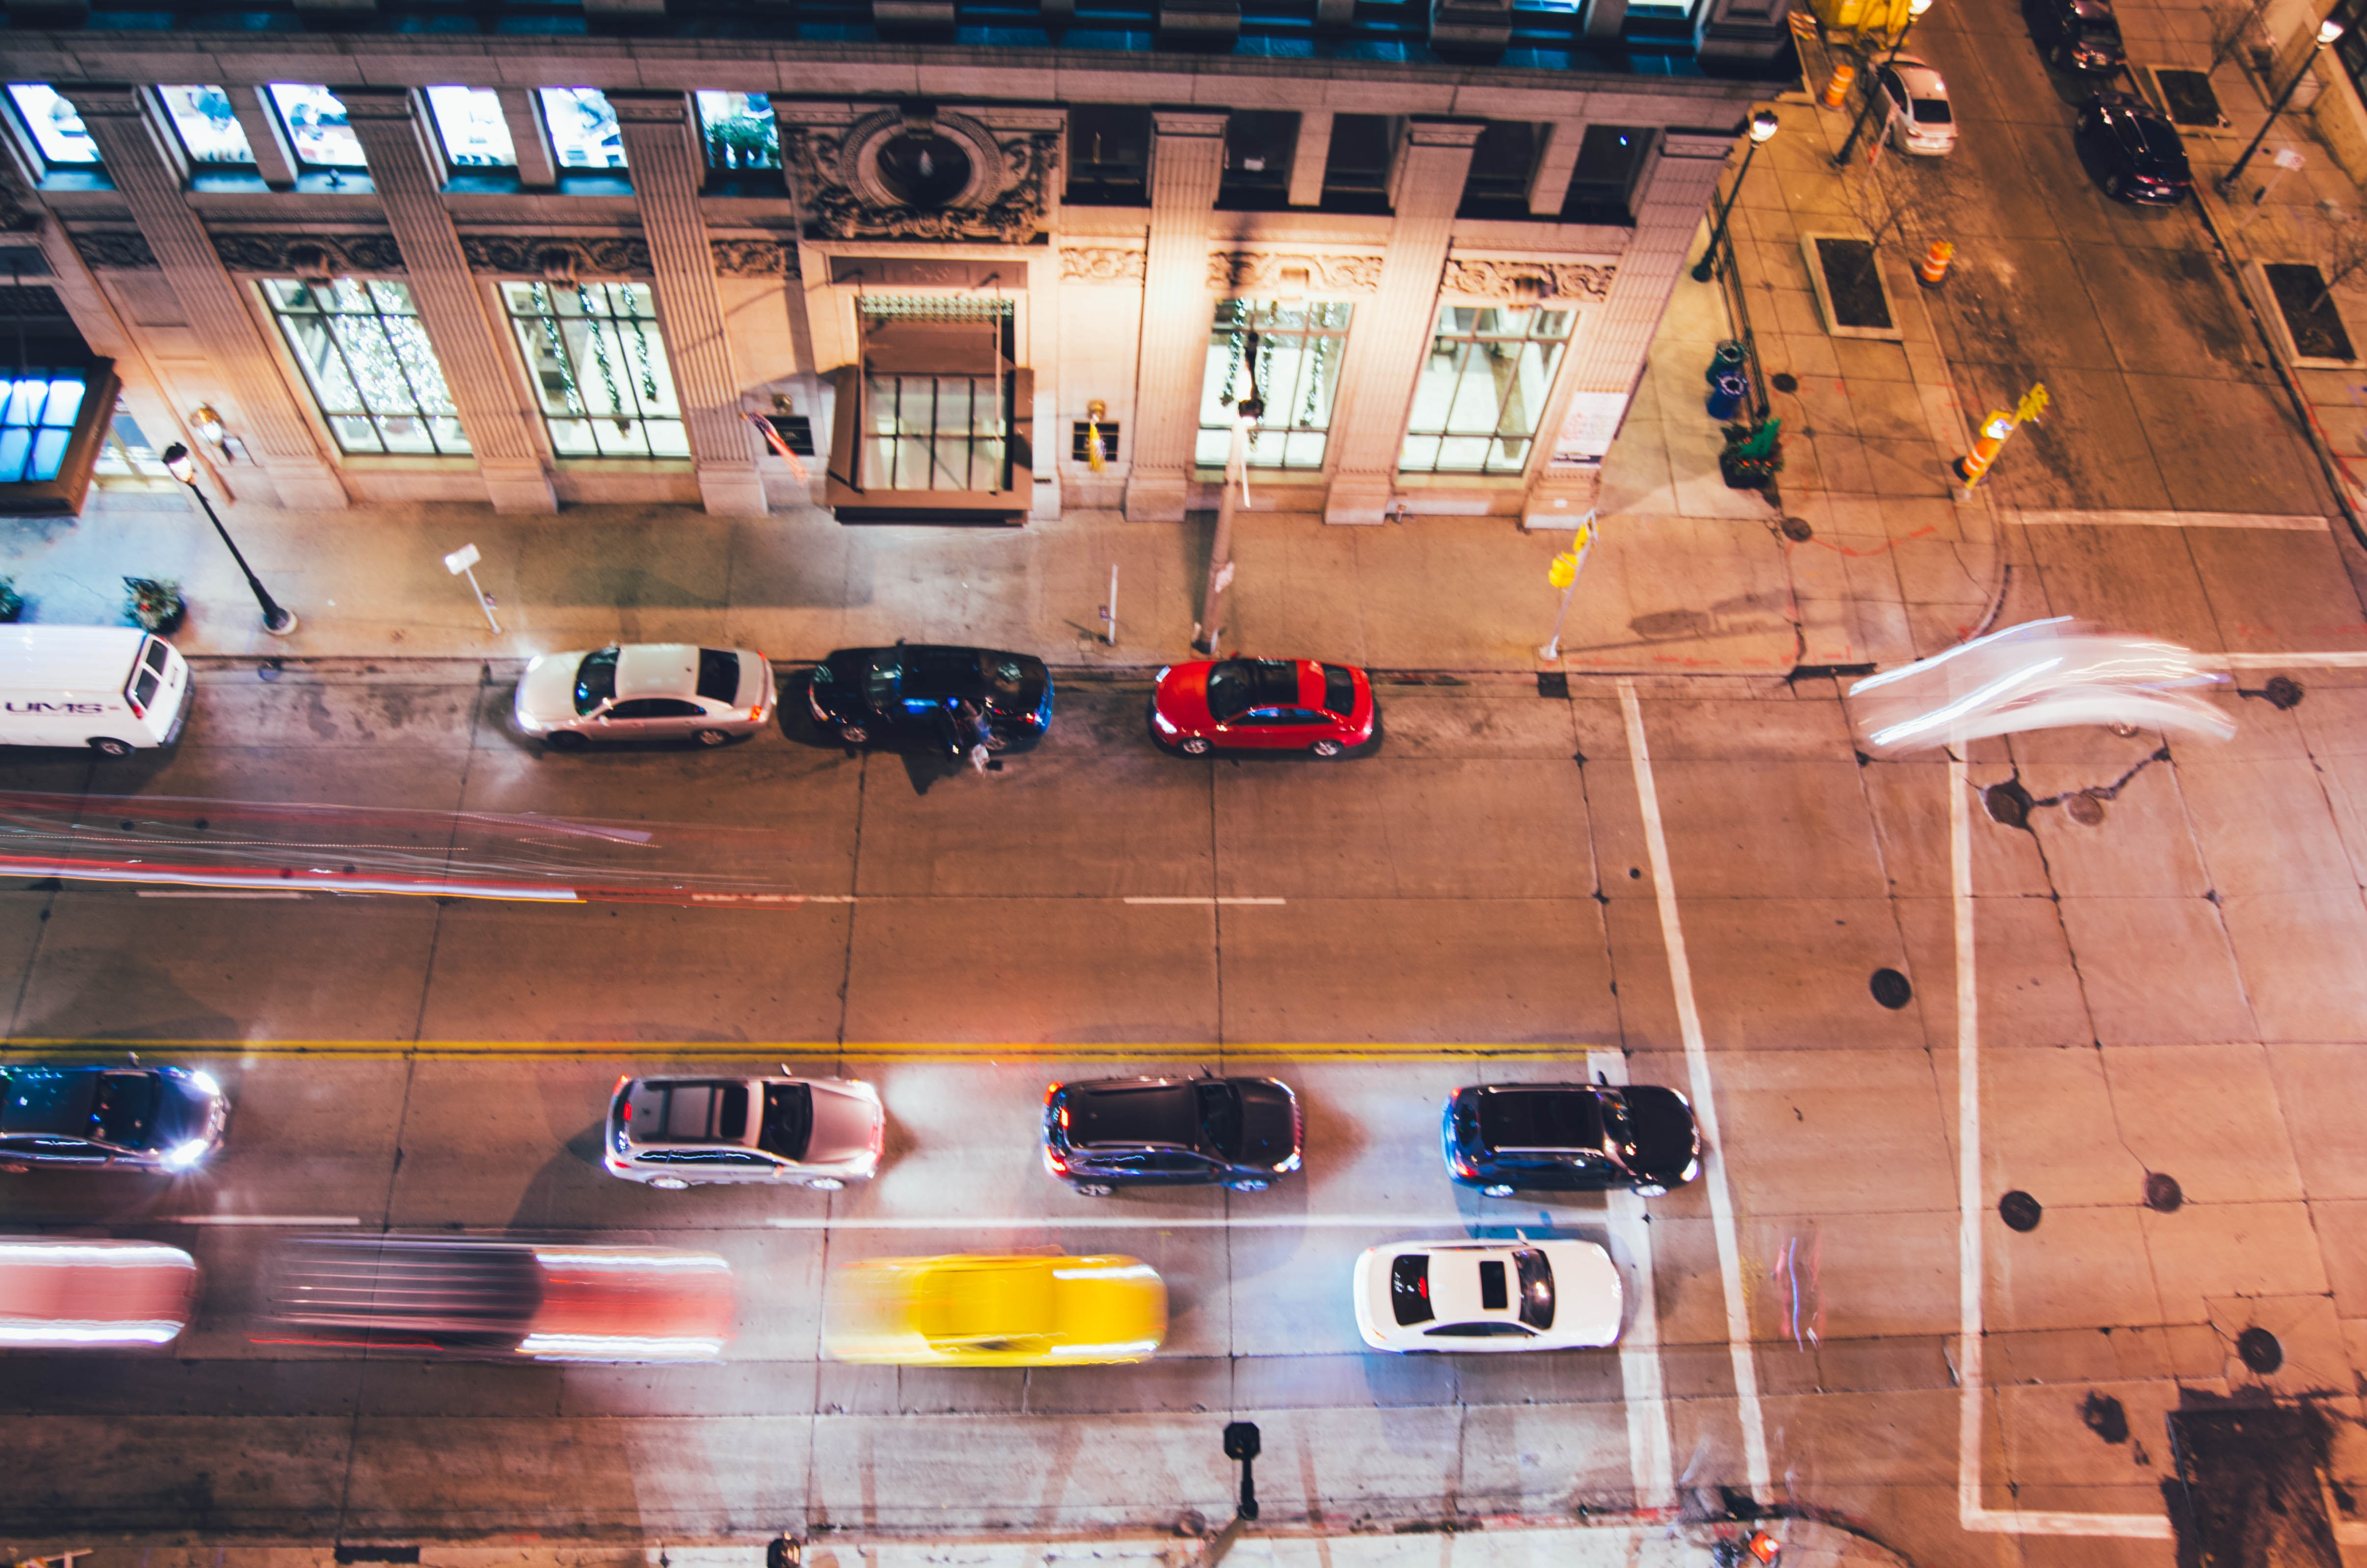 Street view of cars passing by